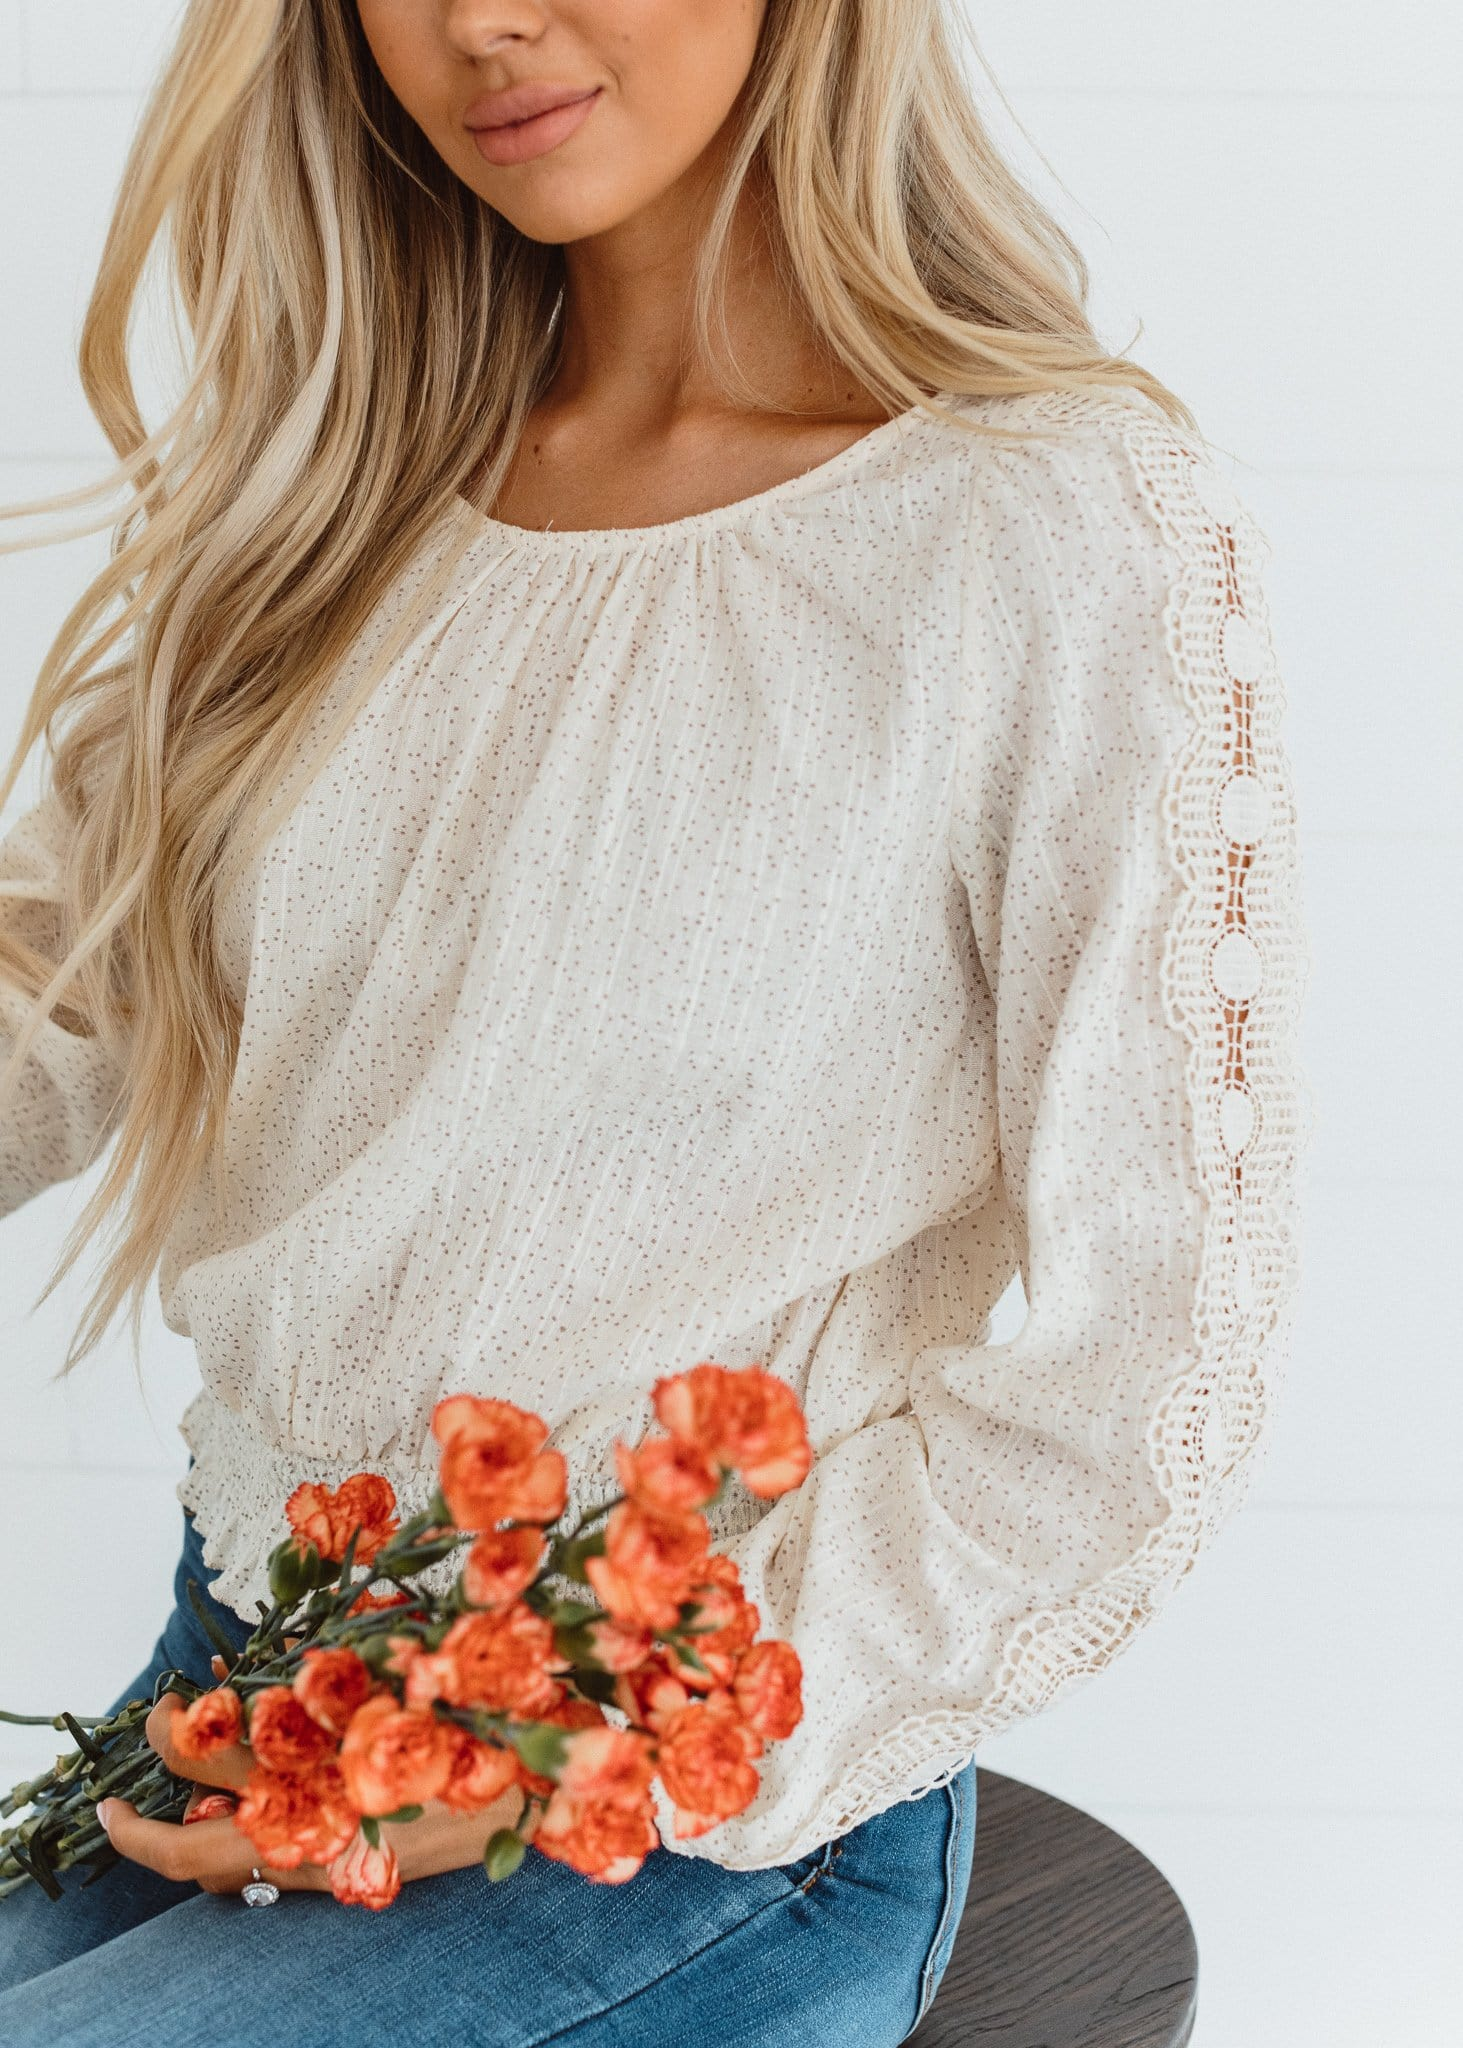 The Loretta Lace Sleeve Top in Cream